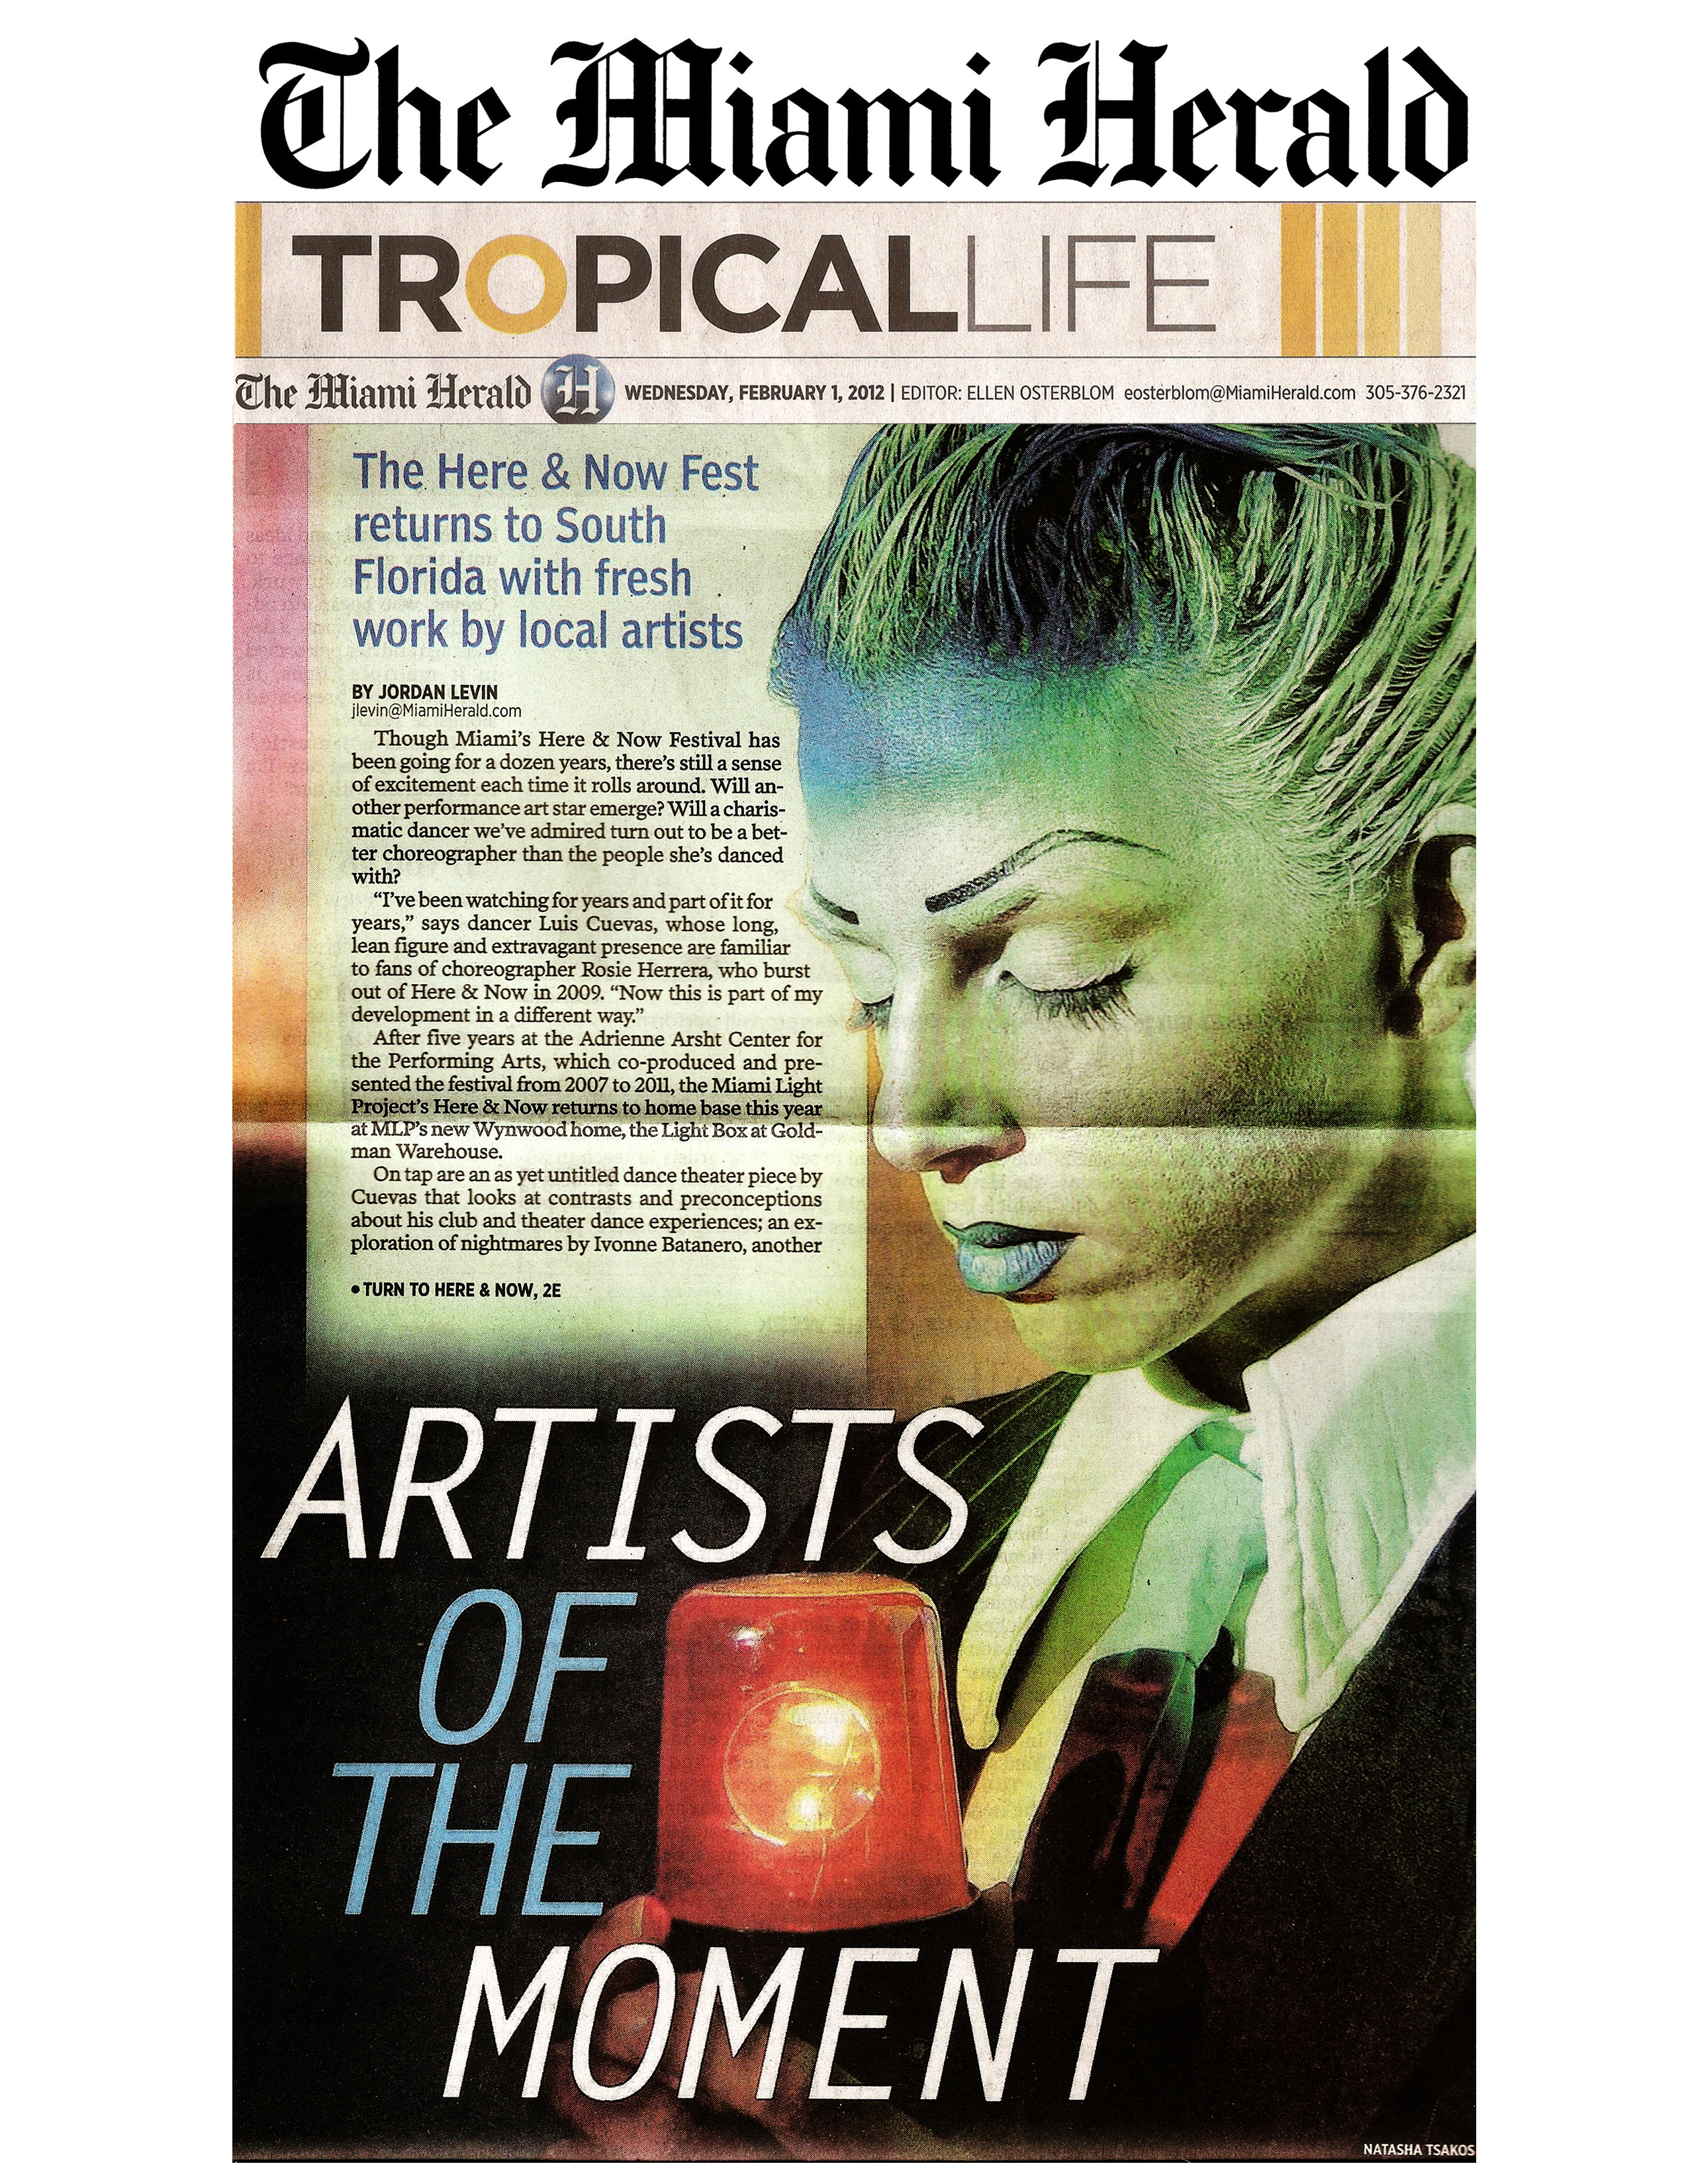 MIAMI HERALD Tropical life Artists of the Moment3 copy